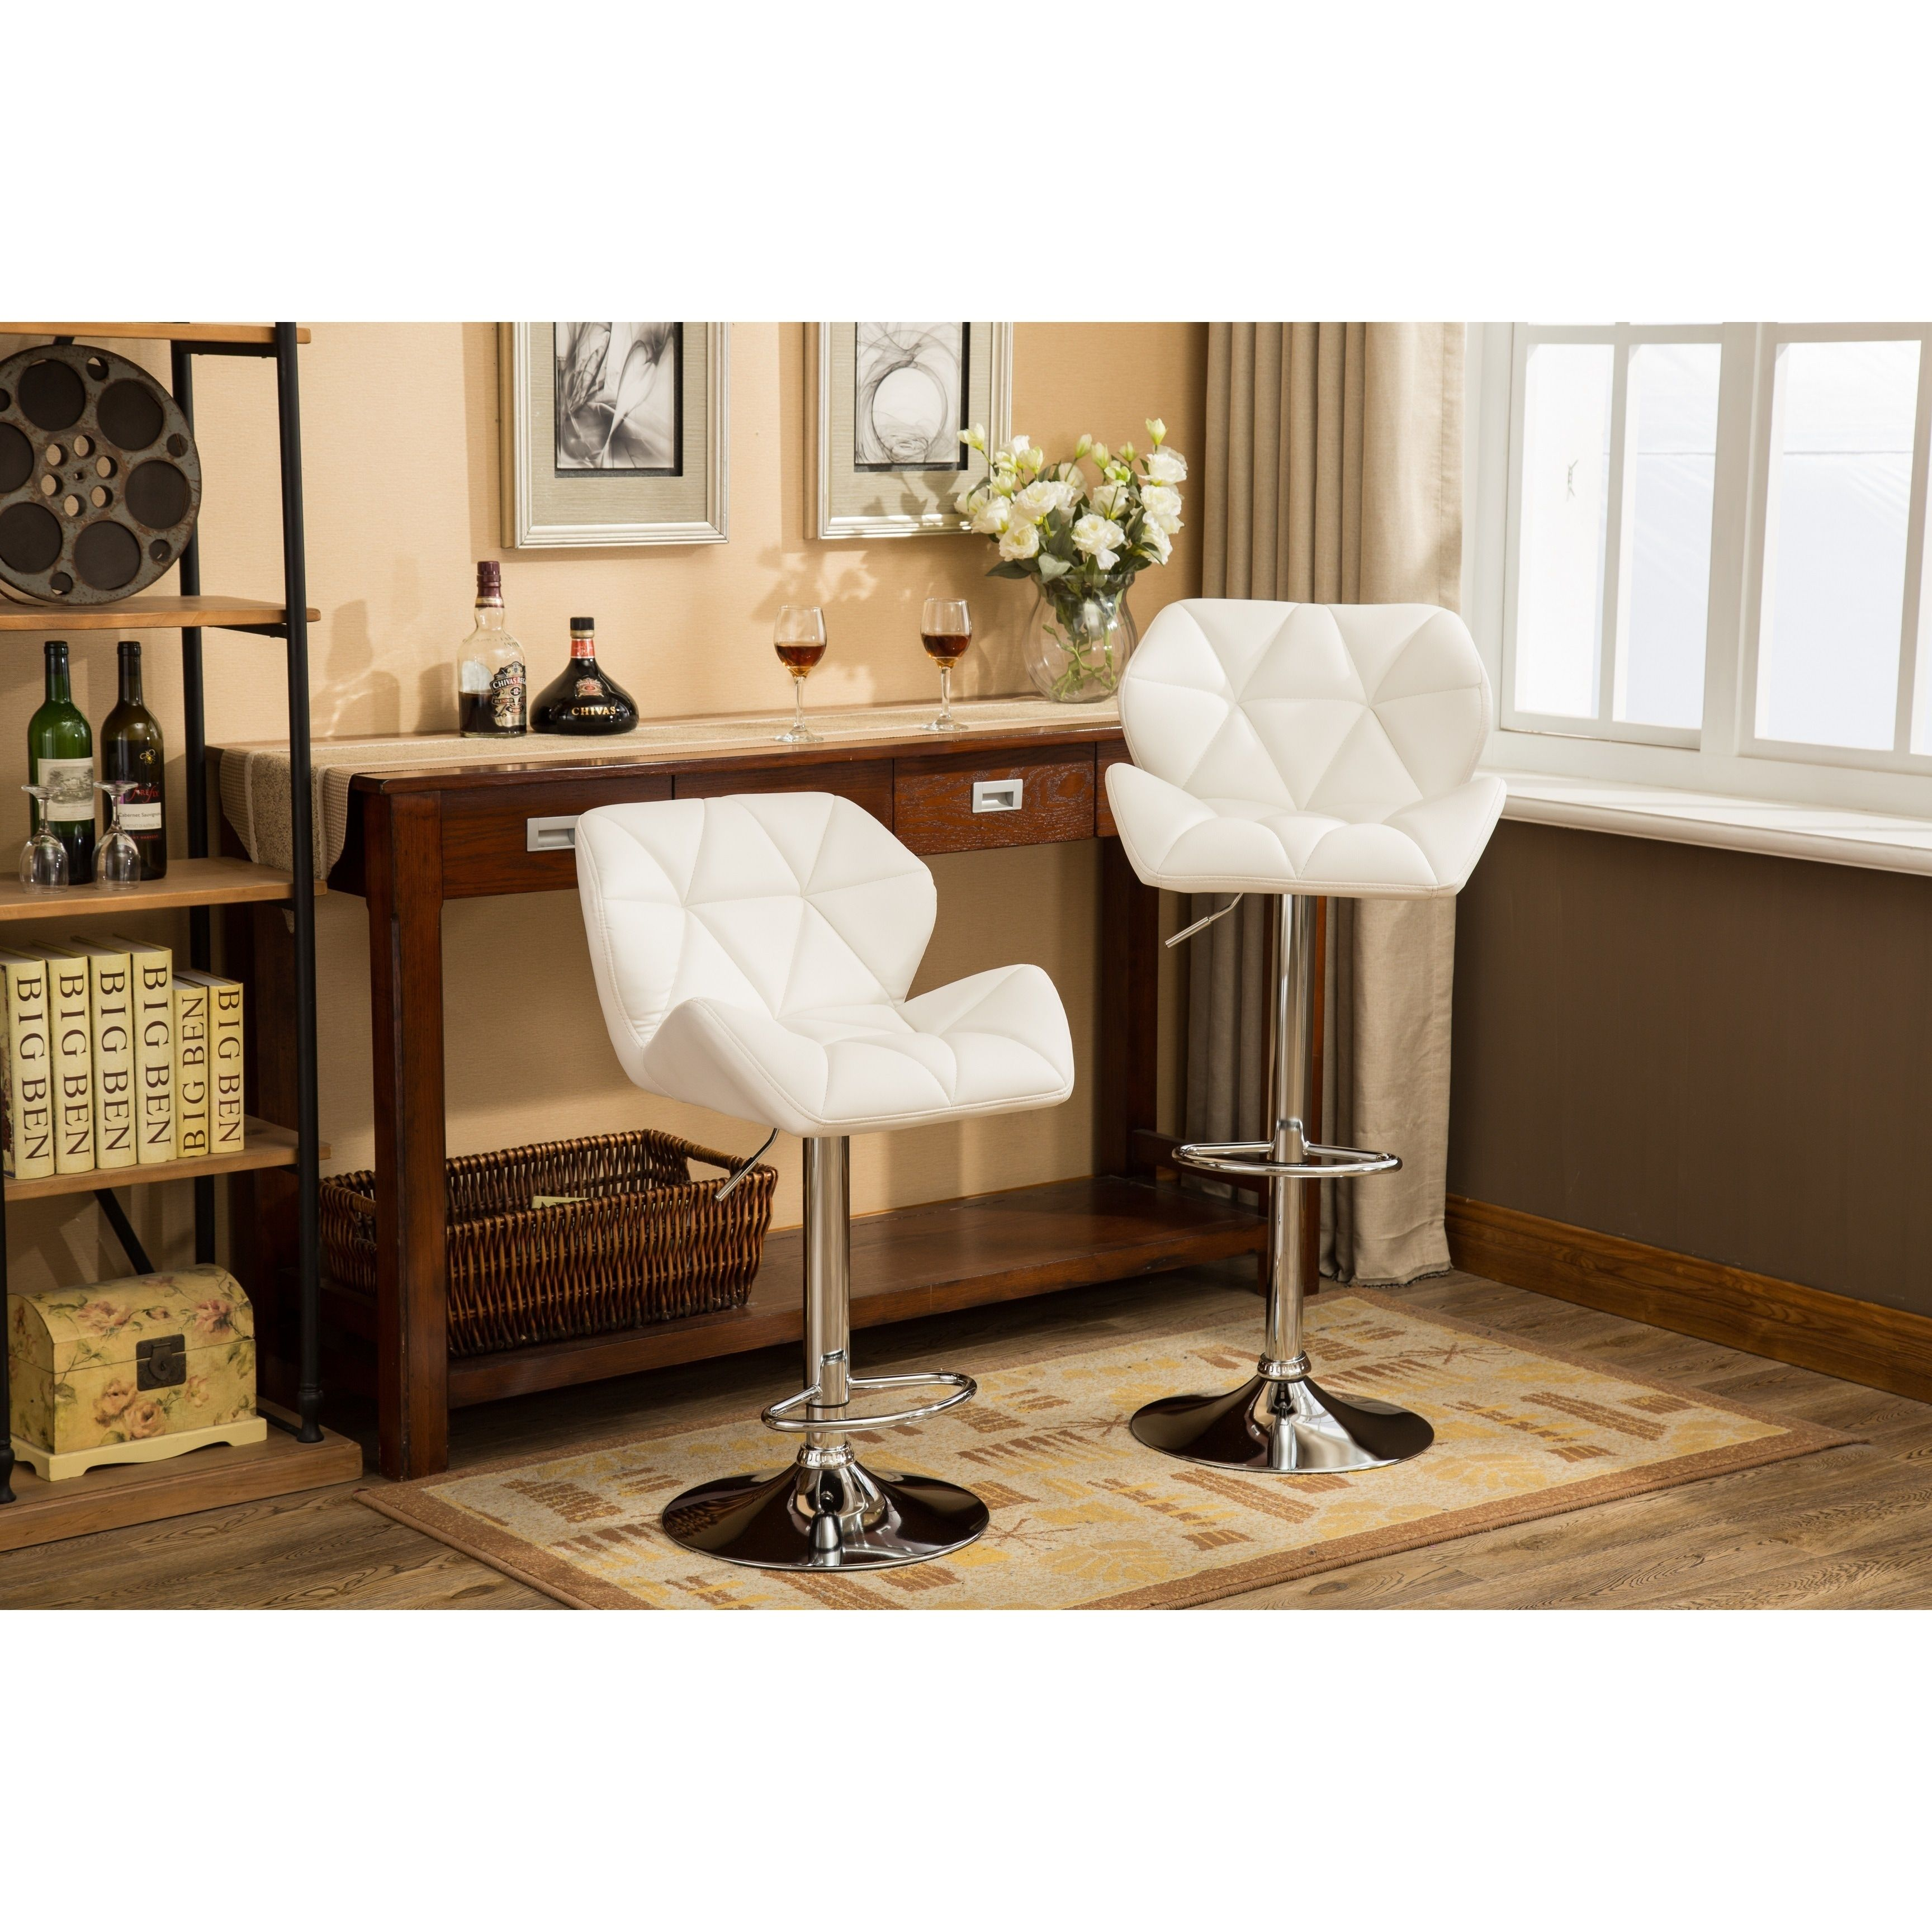 Surprising Glasgow Faux Leather Tufted Adjustable Height Bar Stools Andrewgaddart Wooden Chair Designs For Living Room Andrewgaddartcom